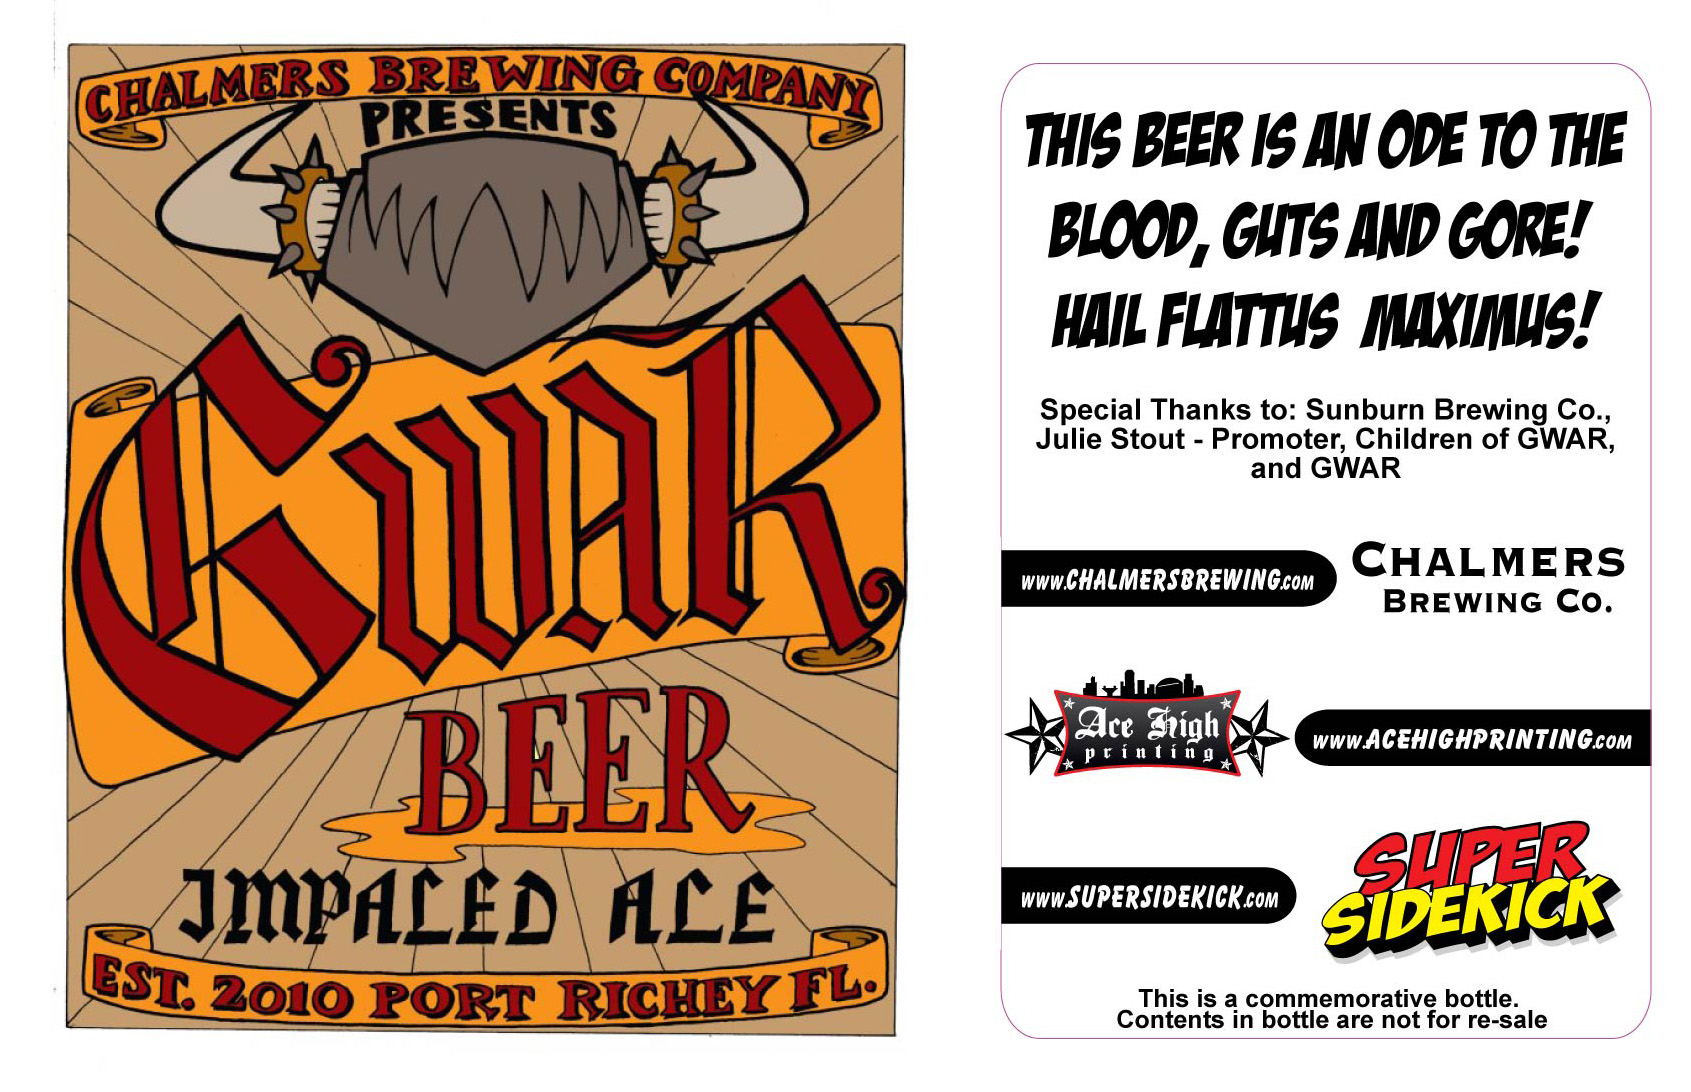 Impaled Ale label